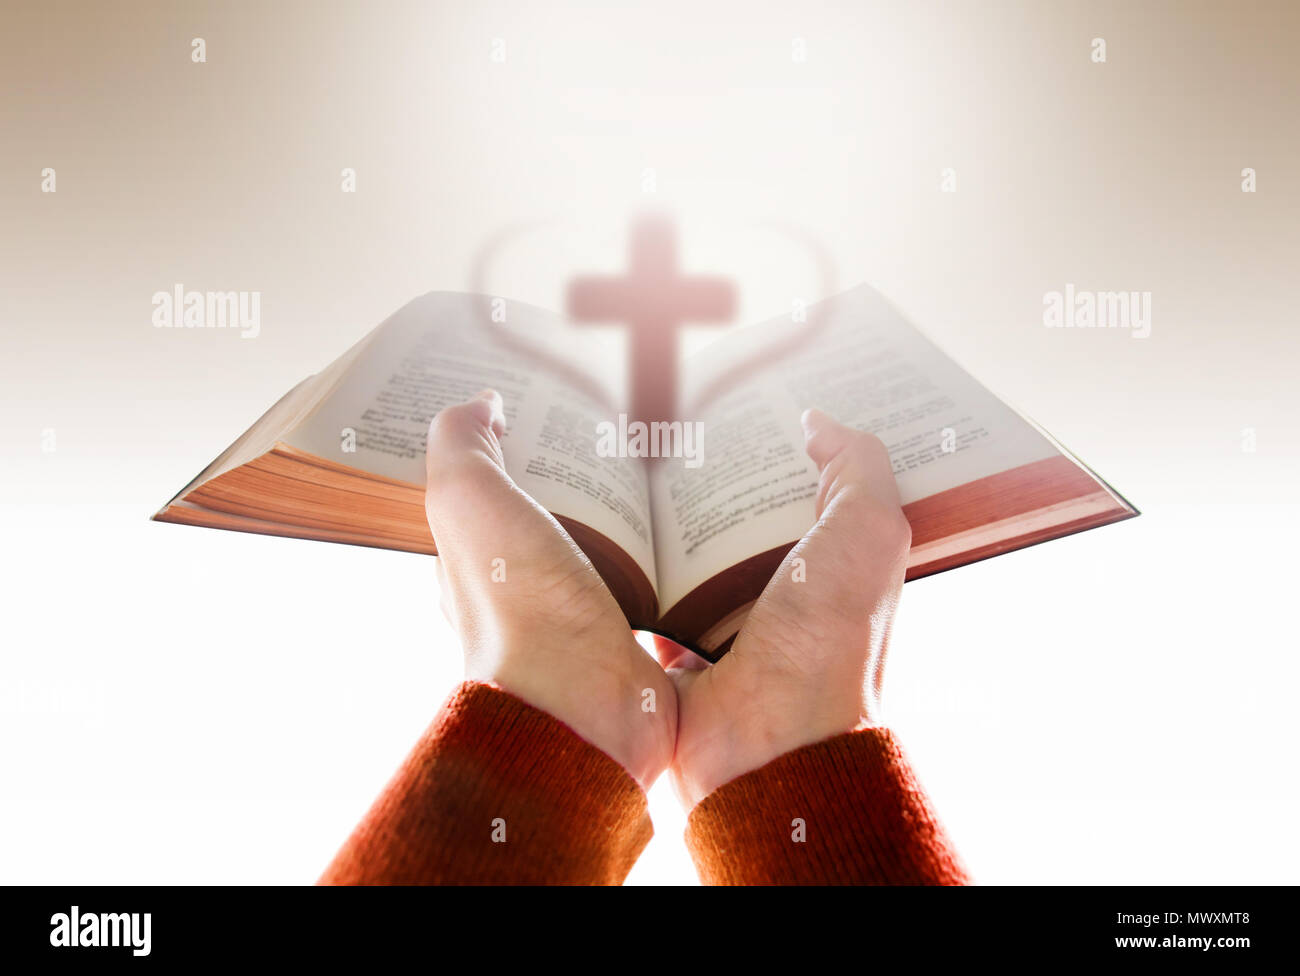 Hands of Woman Raise up a Bible for Praying with Blurred Shape of Cross and  Heart